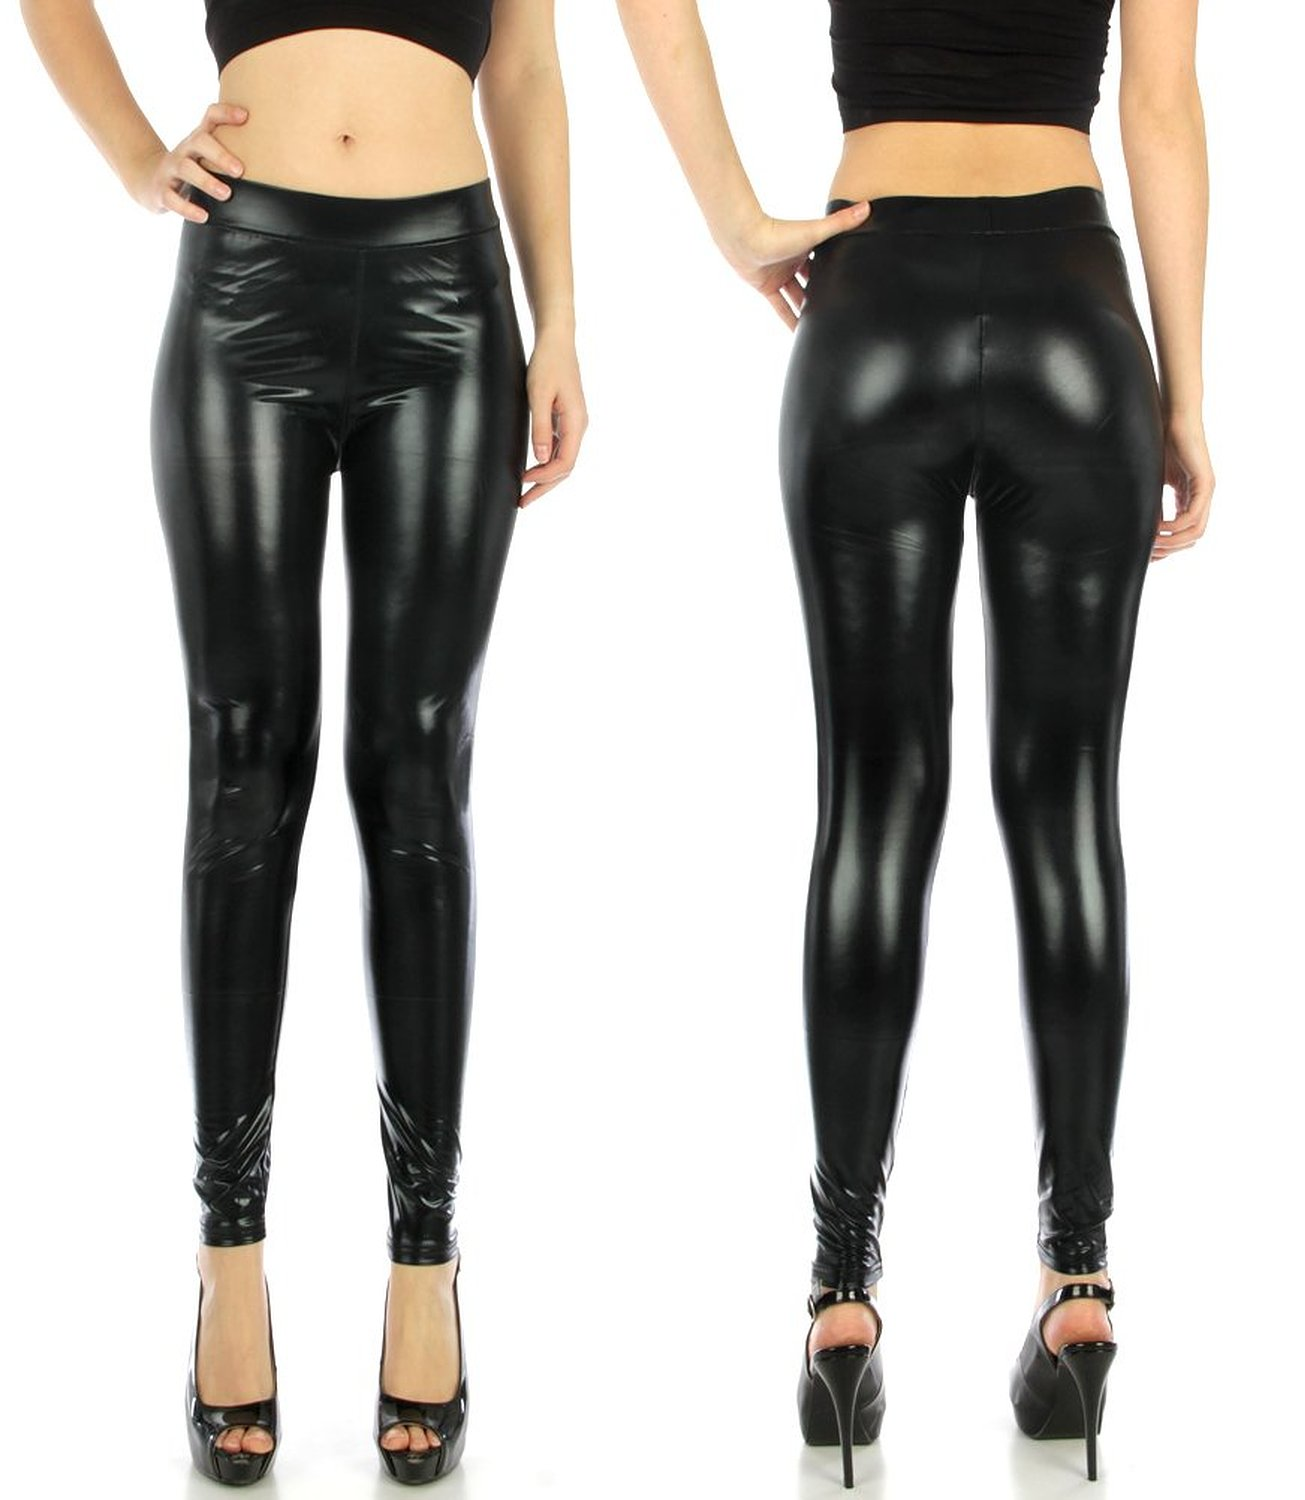 She S Women S Plus Size Shiny Stretch Liquid Look Leggings One Size